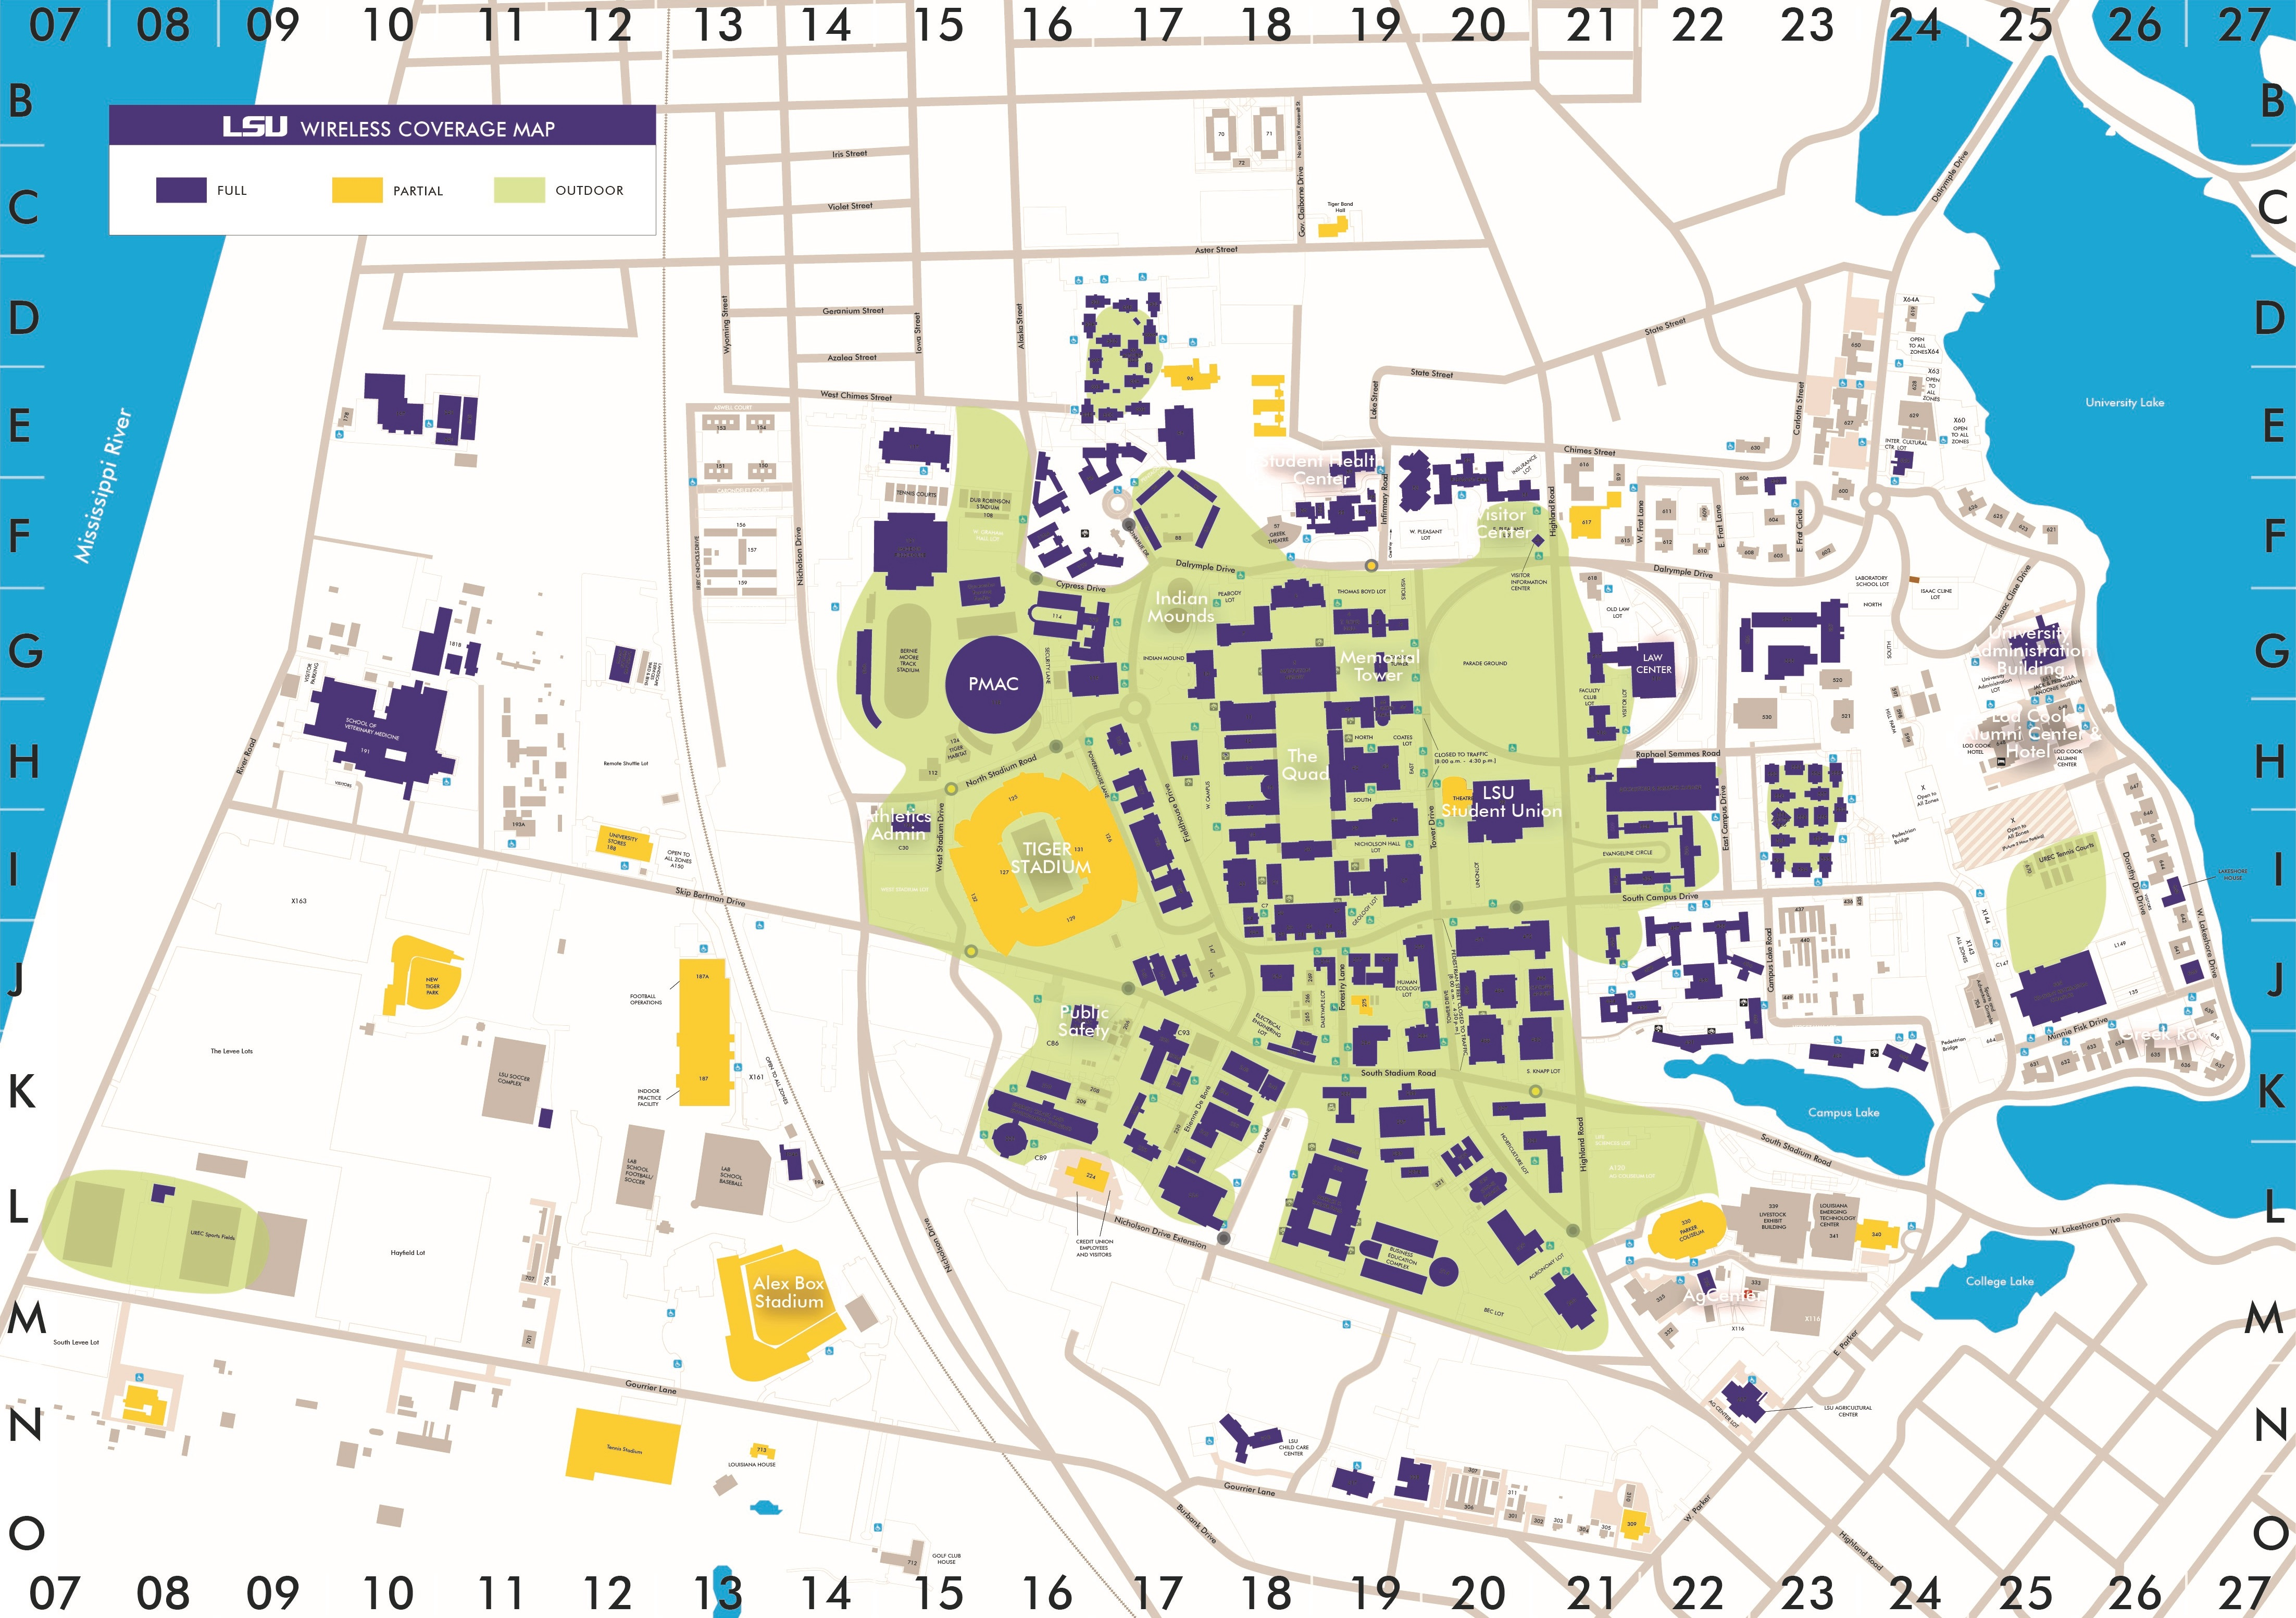 A map of LSU's wireless coverage.